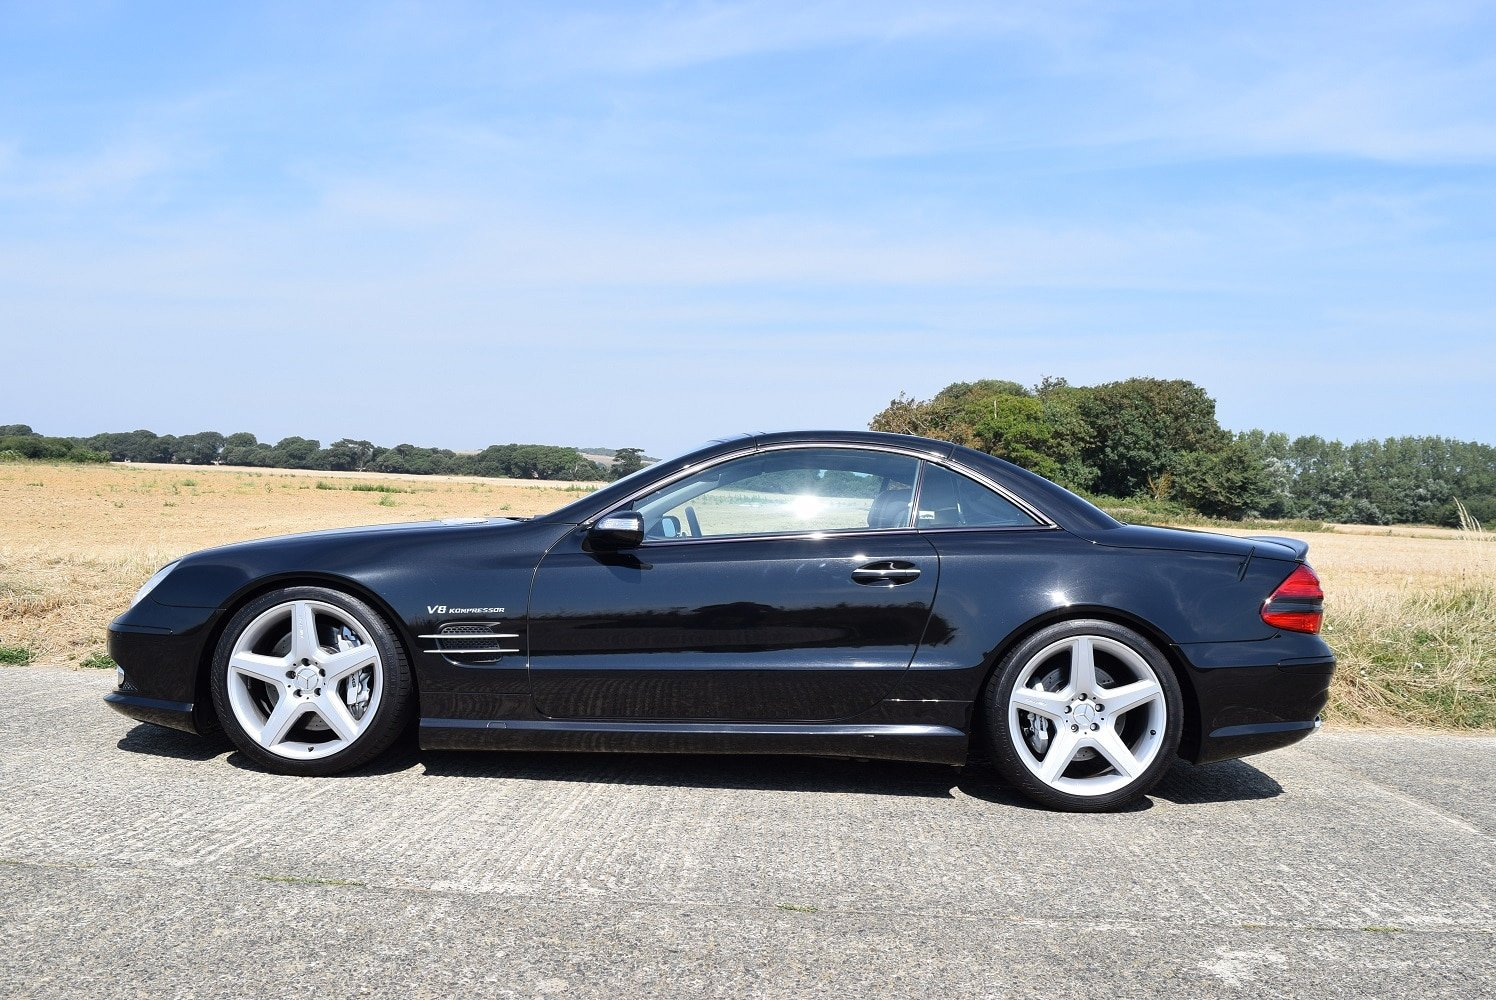 2006 Mercedes Benz SL55 AMG For Sale (picture 4 of 6)